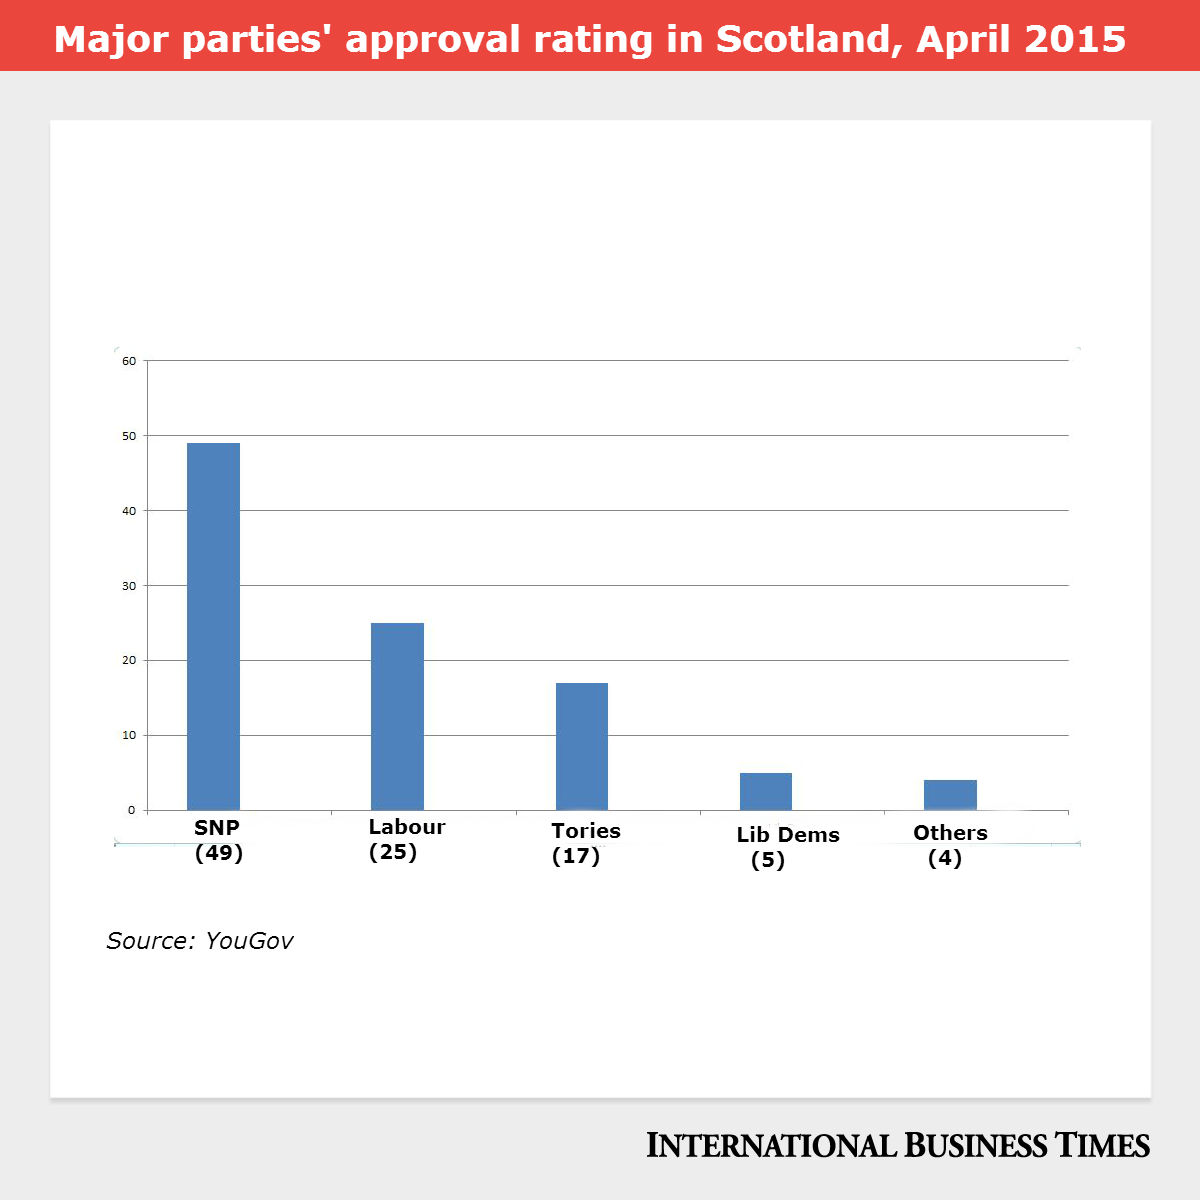 SNP approval rating